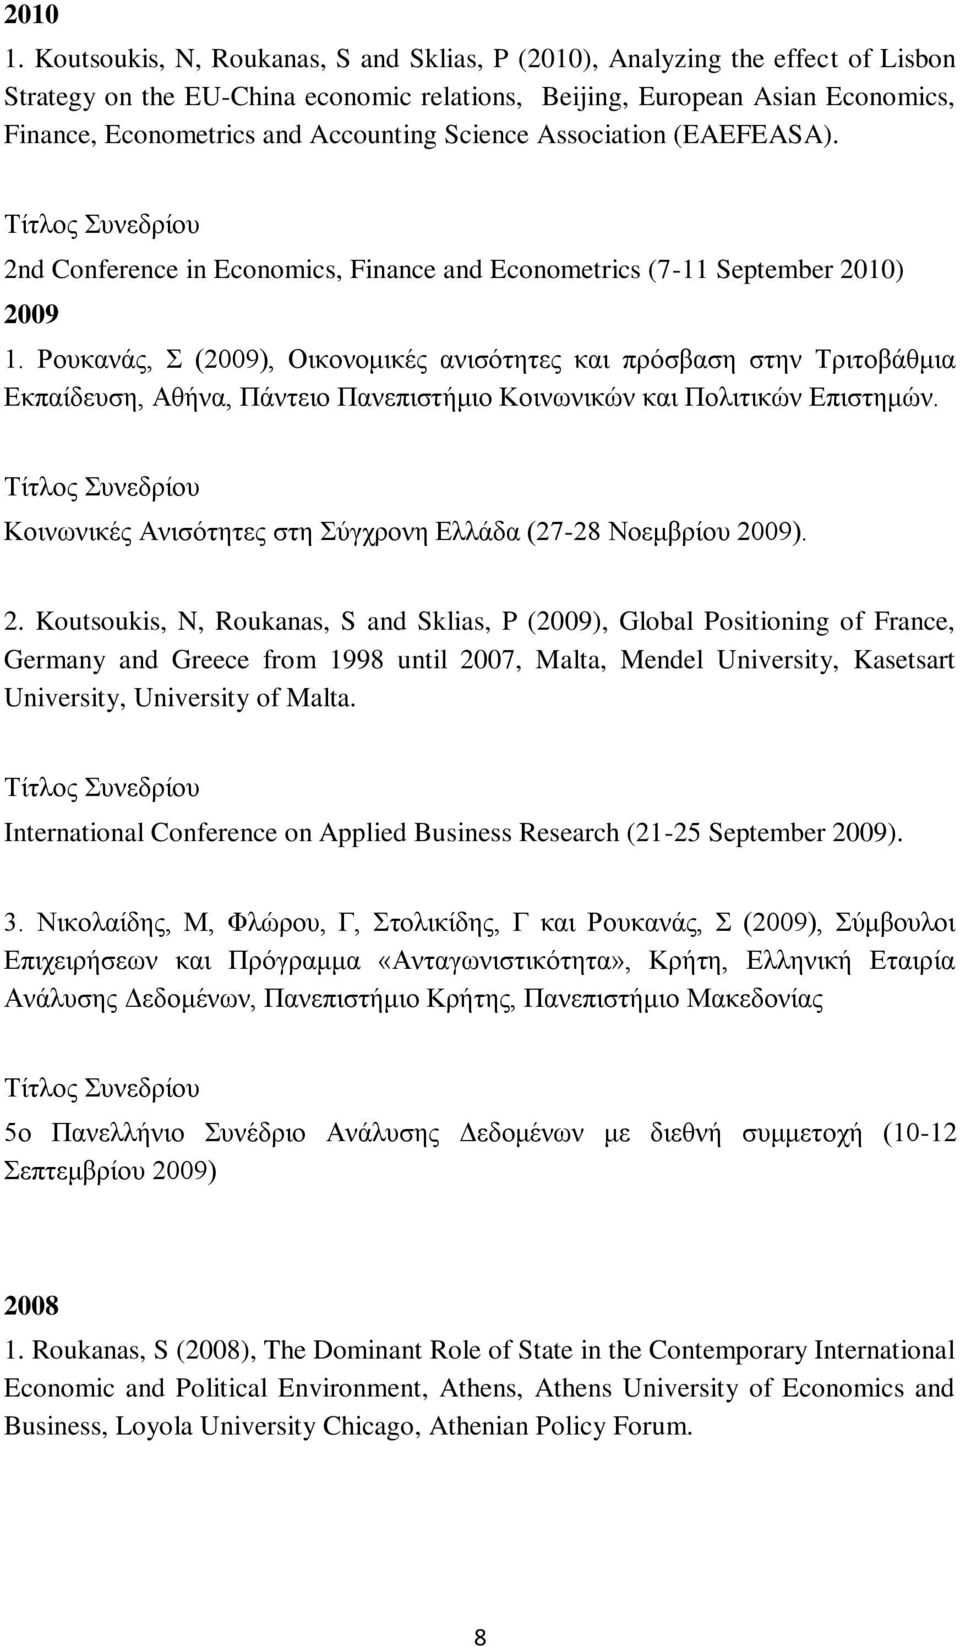 Science Association (EAEFEASA). 2nd Conference in Economics, Finance and Econometrics (7-11 September 2010) 2009 1.